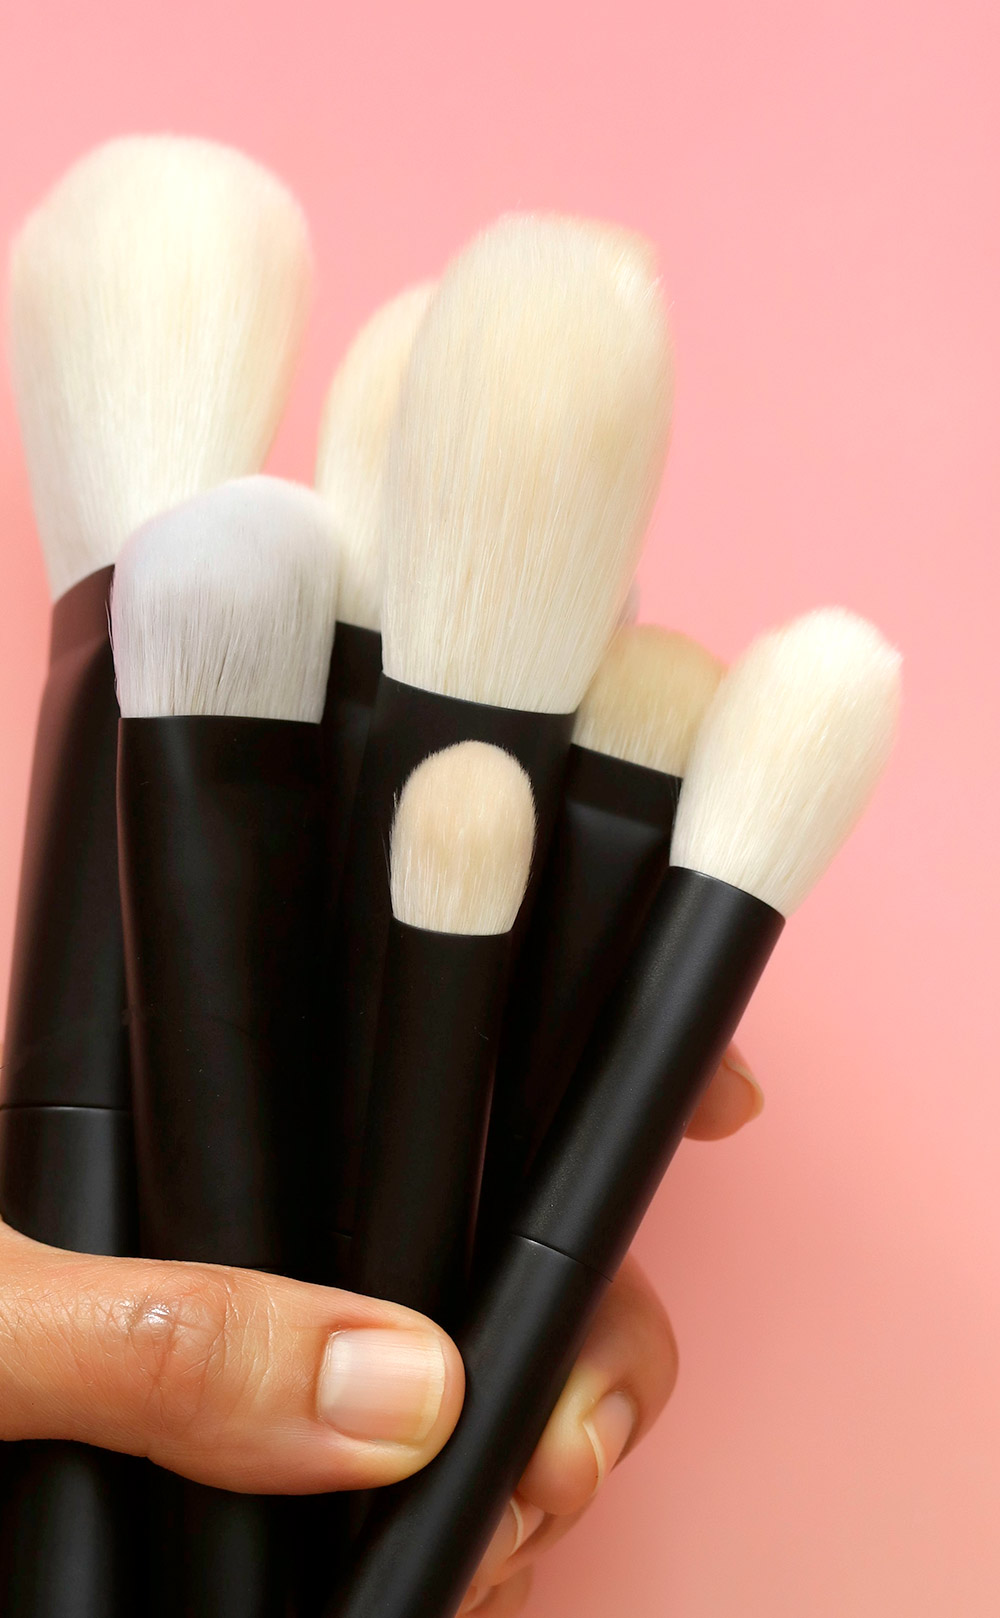 nars pro brush collection in hand